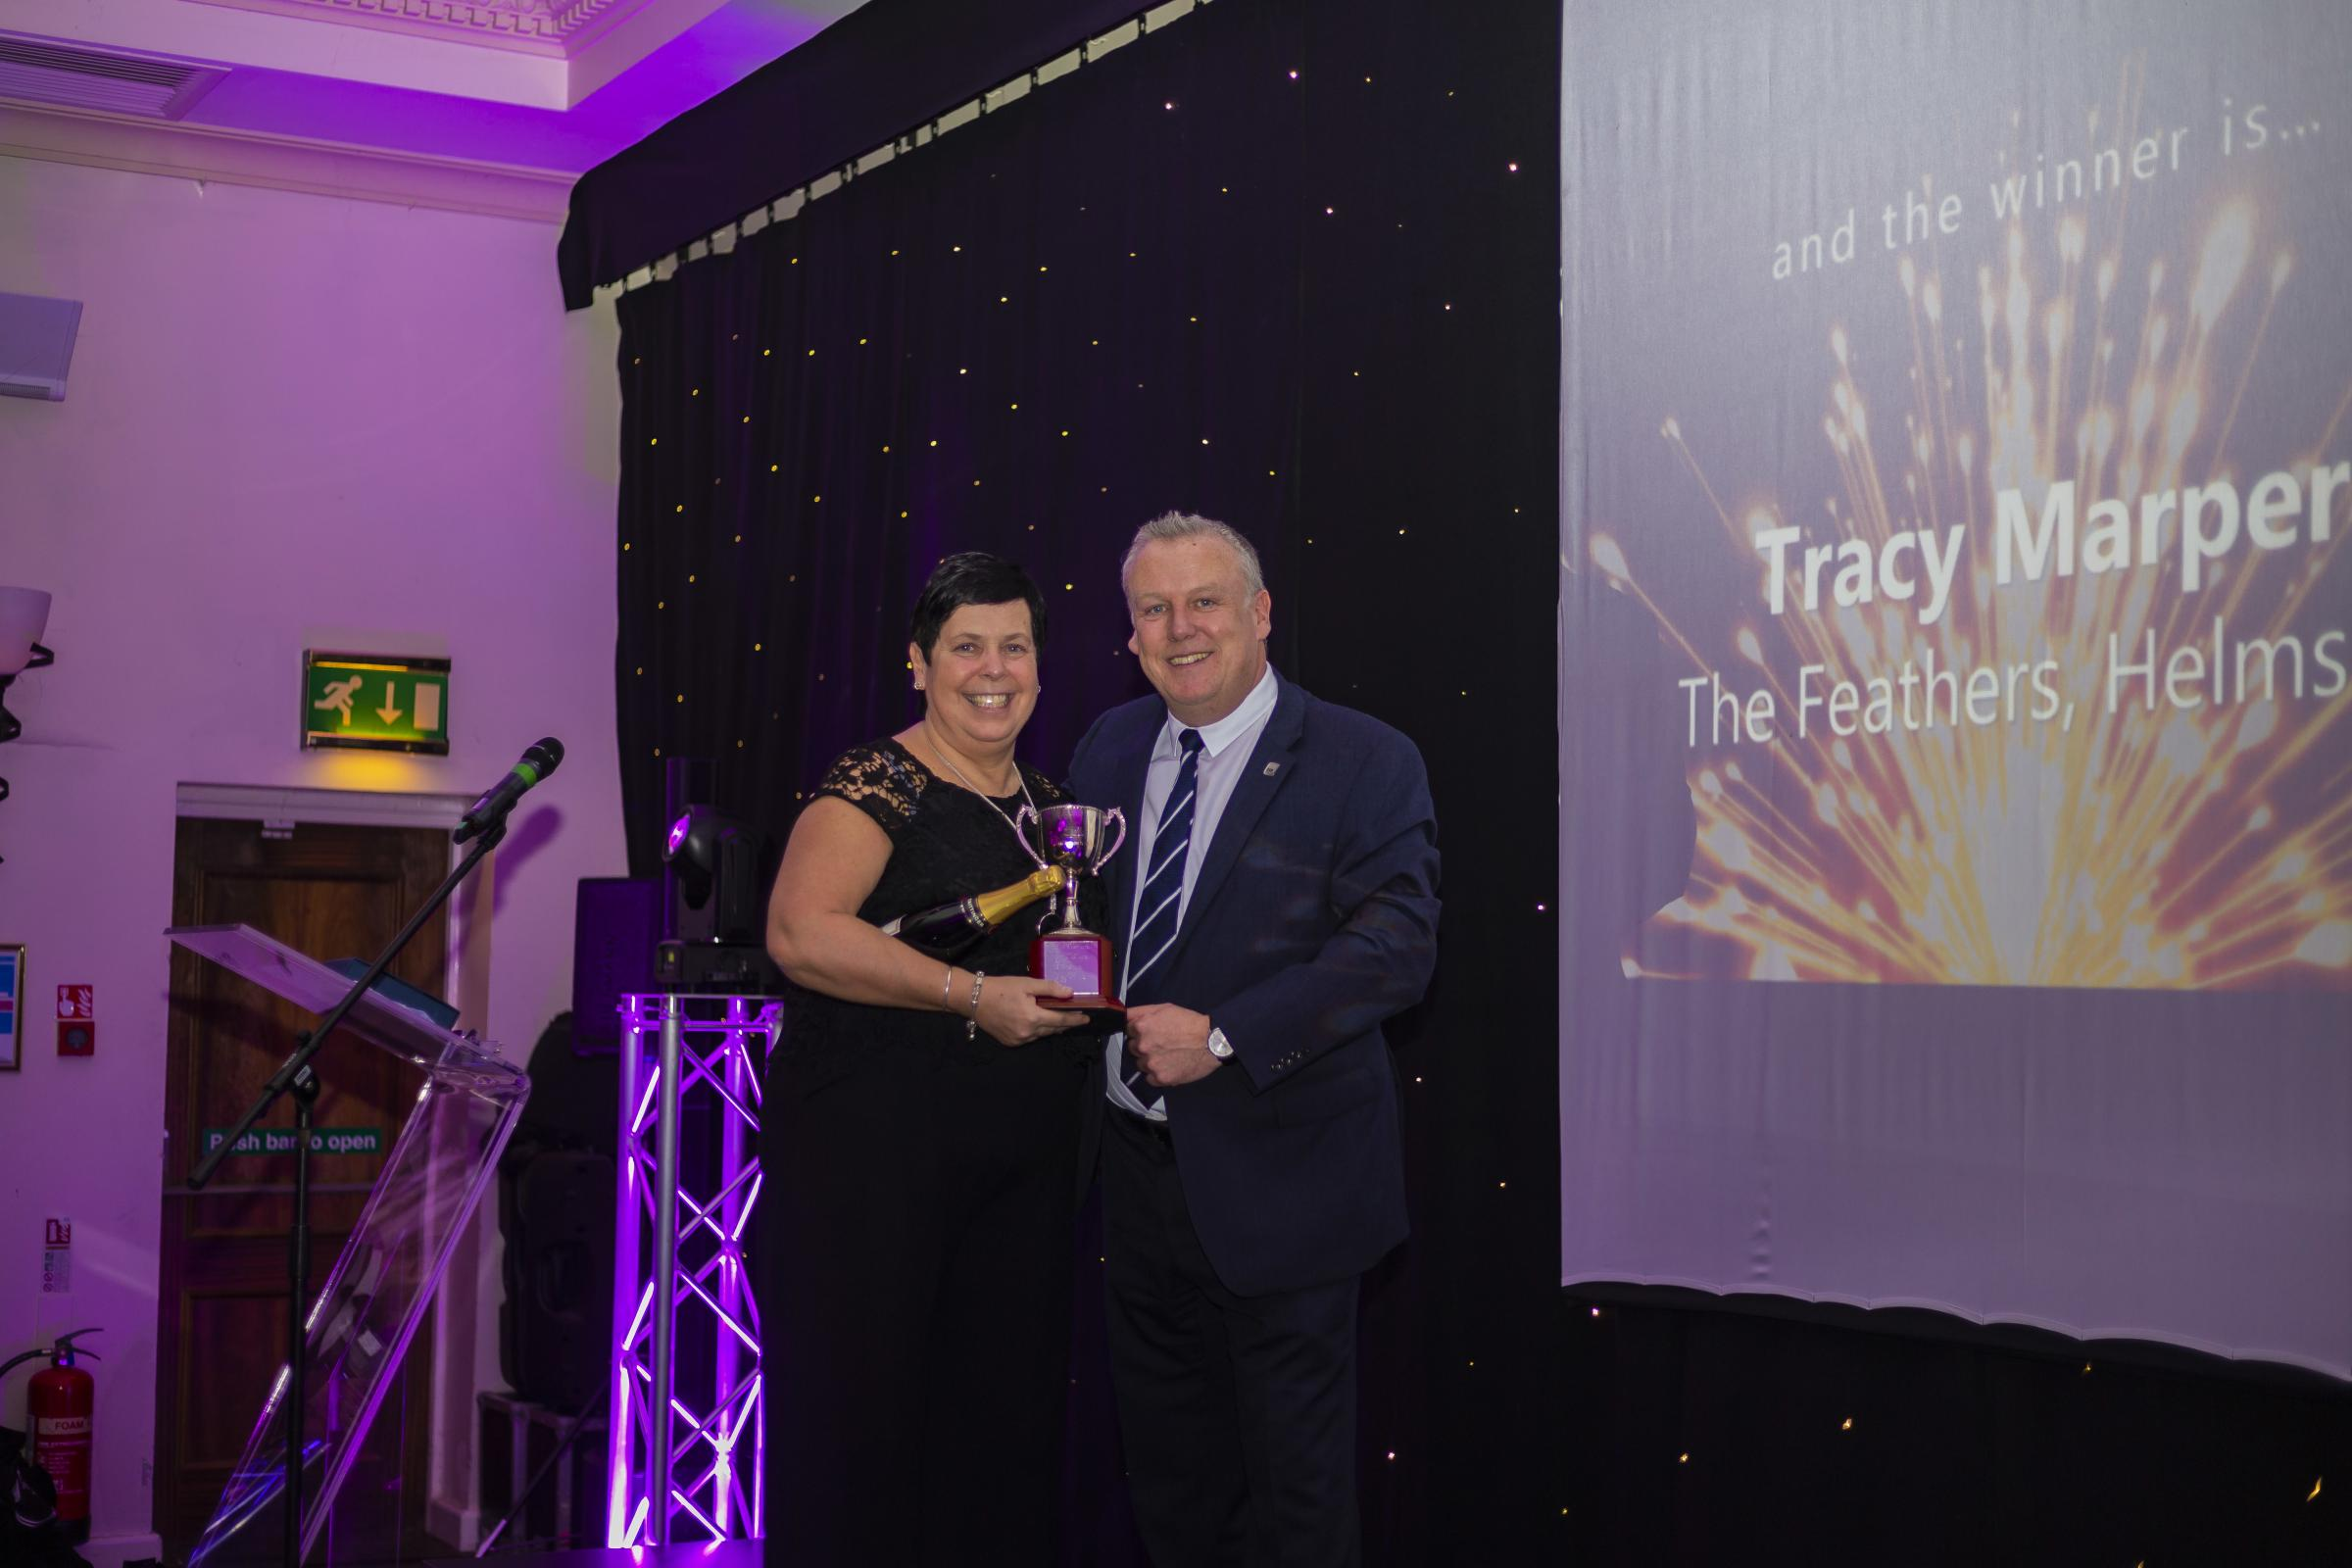 Tracy Marper, general manager of the Feathers Helmsley, picking up her award from David Campbell, head of operations for The Coaching Inn Group